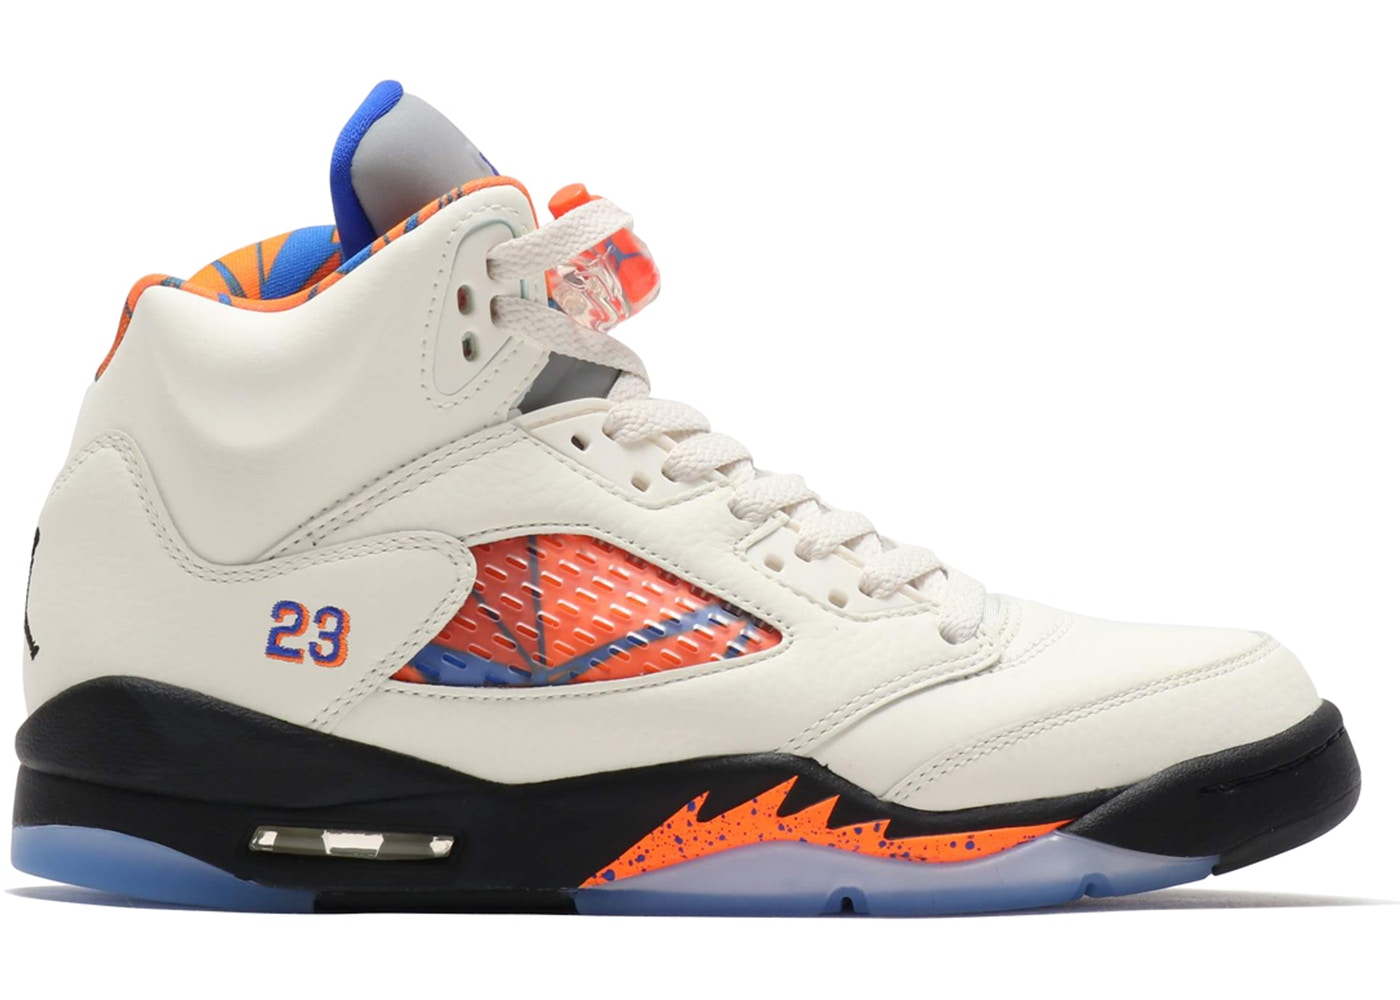 0bbc7335f12 Jordan 5 Retro International Flight (GS) - 440888-148